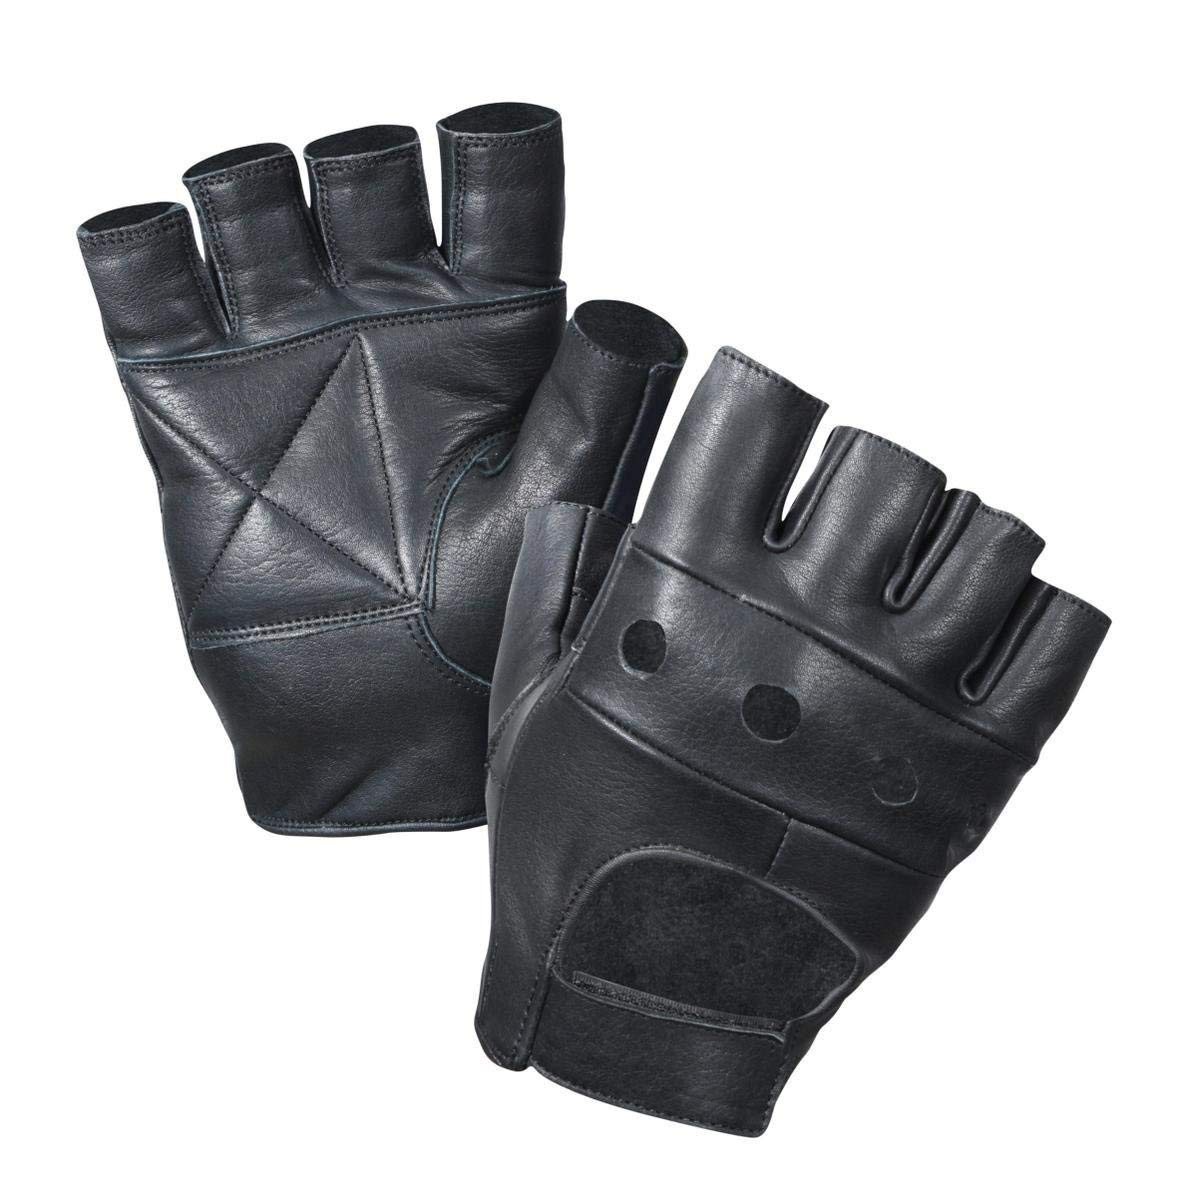 New Black Genuine Leather Motorcycle Driving Cycling Weight Lifting Fingerless Gloves Small